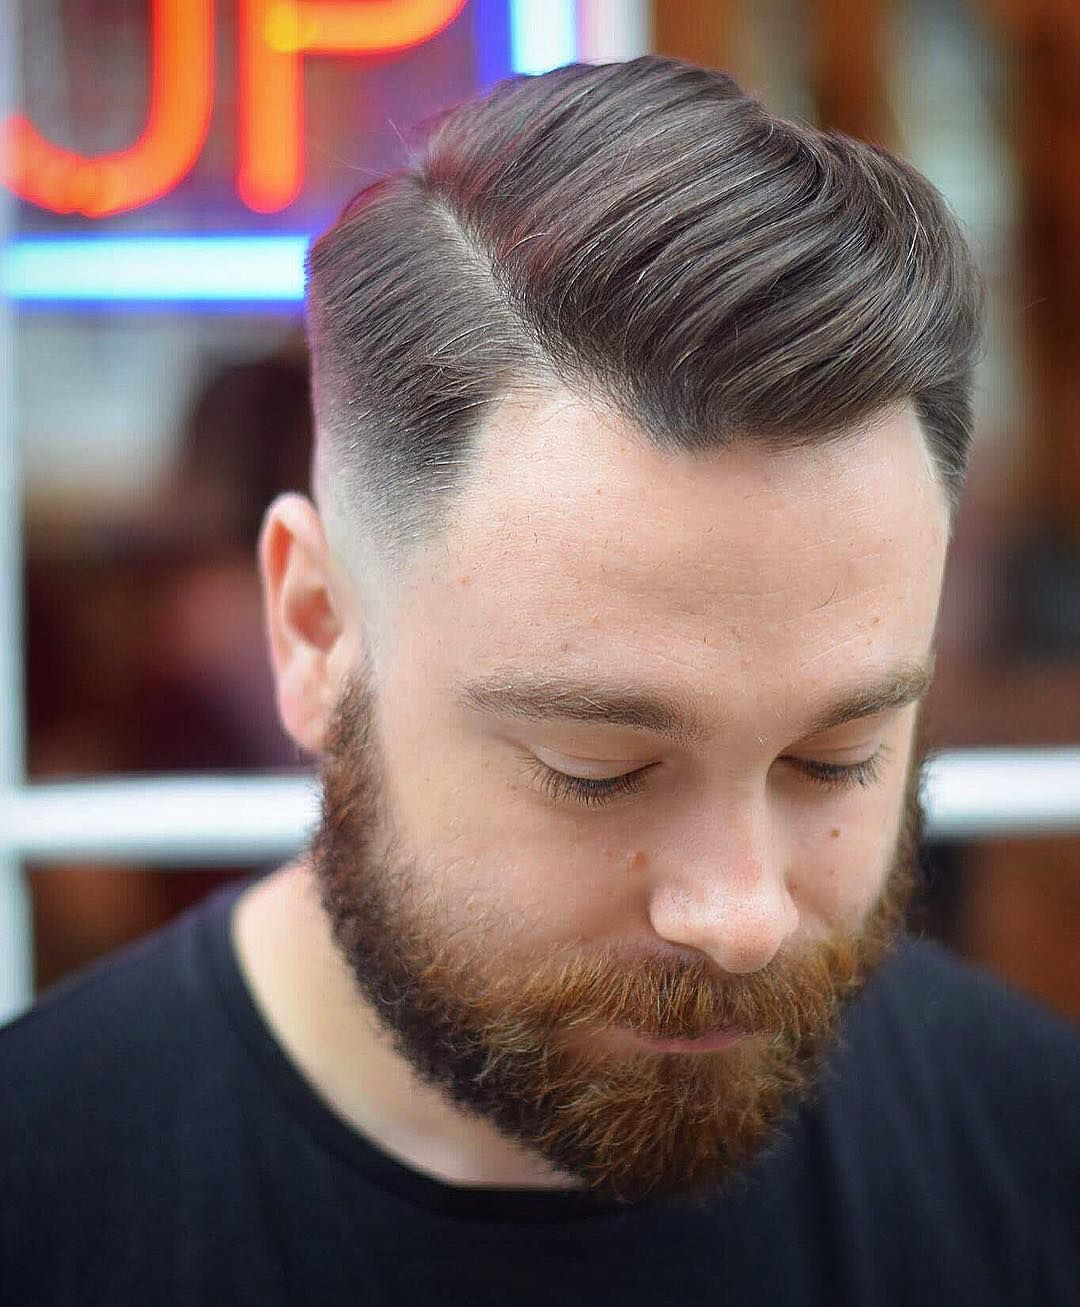 Captivating Best Menu0027s Haircuts + Hairstyles For A Receding Hairline  Http://www.menshairstyletrends.com/best Mens Haircuts Hairstyles For A  Receding Hairline/